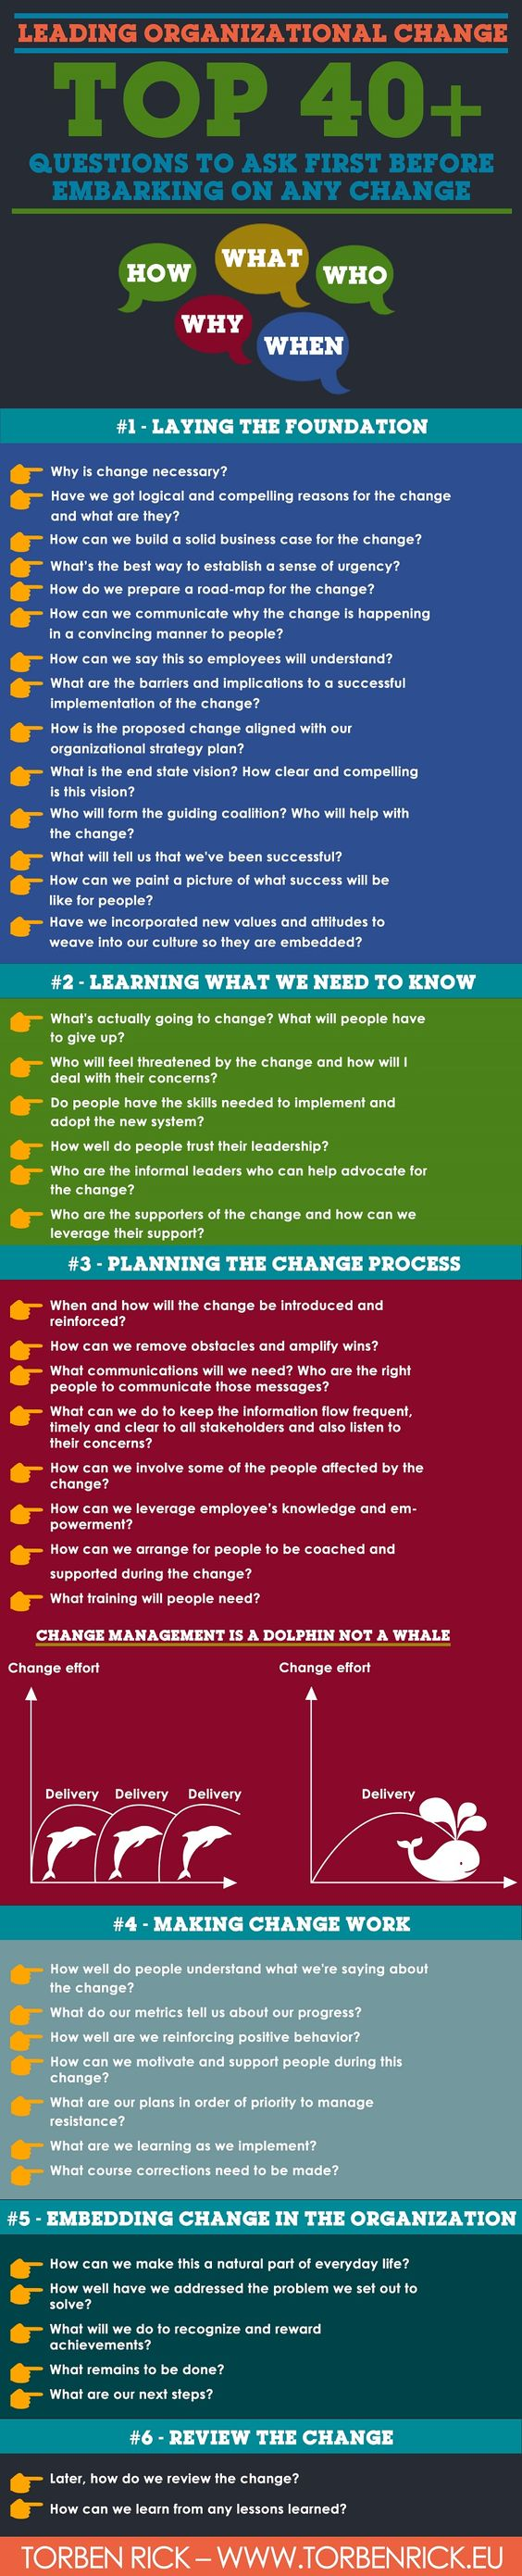 top questions to ask before embarking on any change planes top 40 questions to ask before embarking on any change